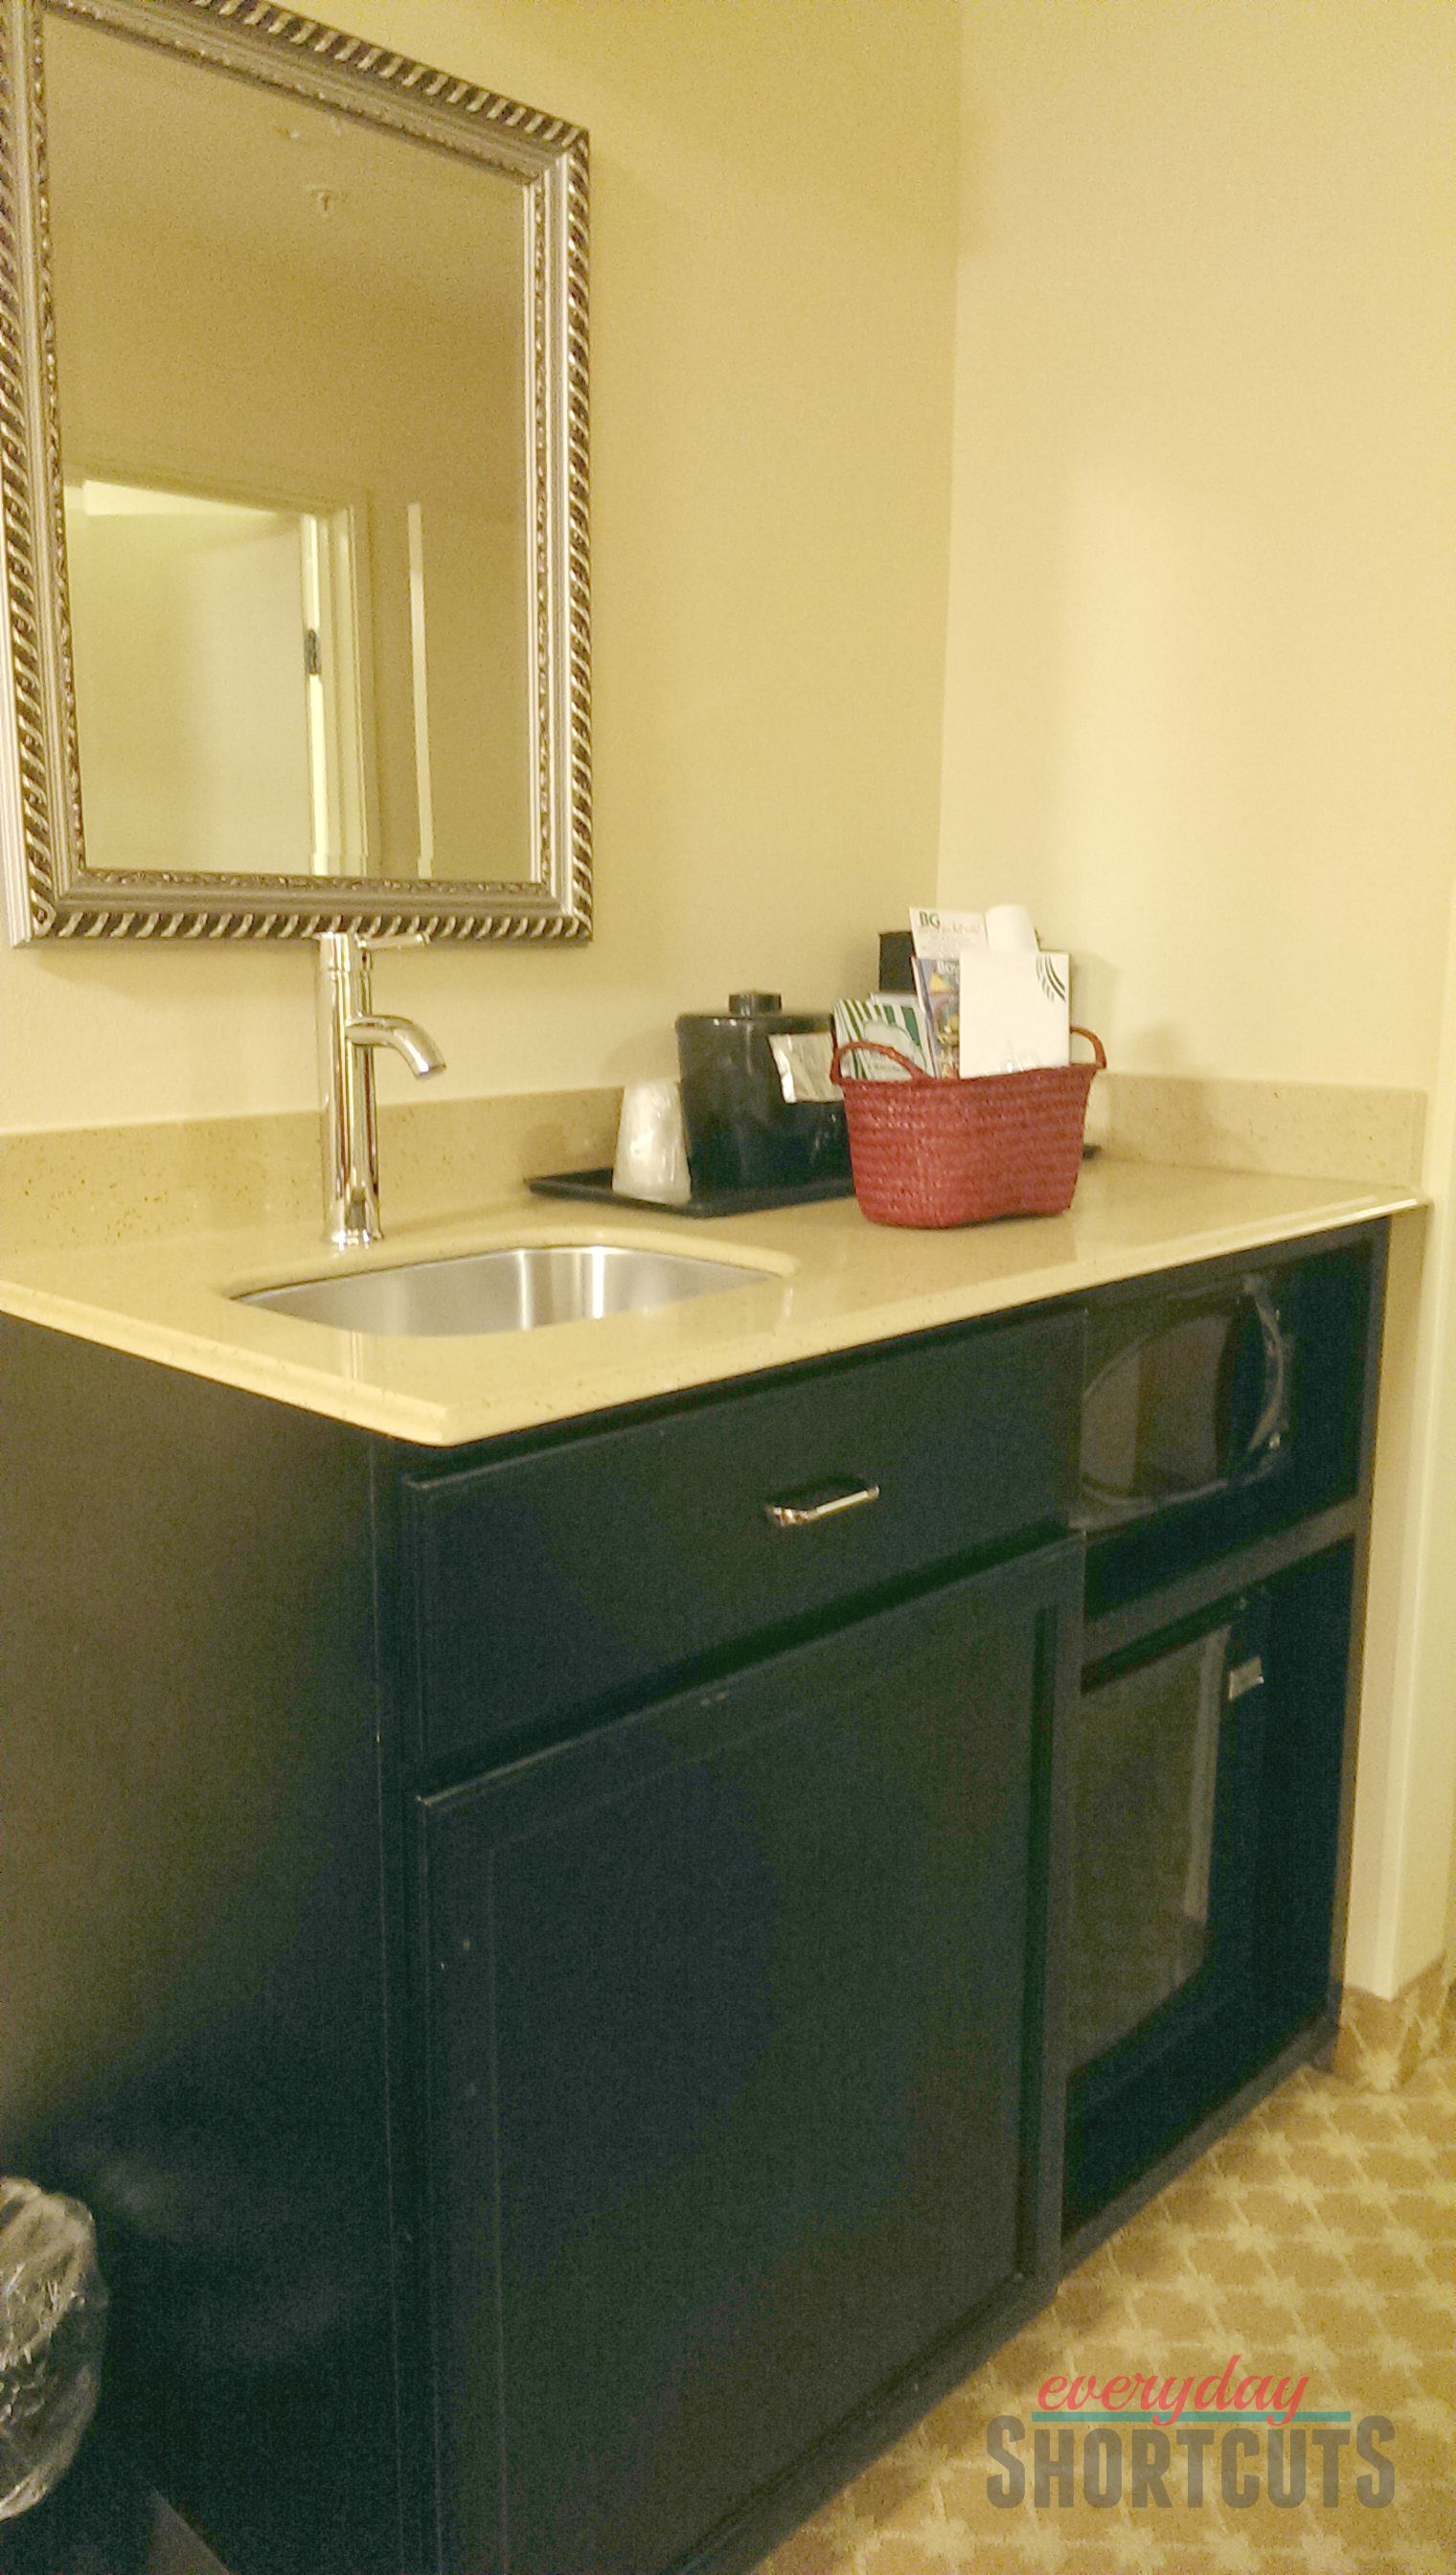 country-inn-suites-kitchenette